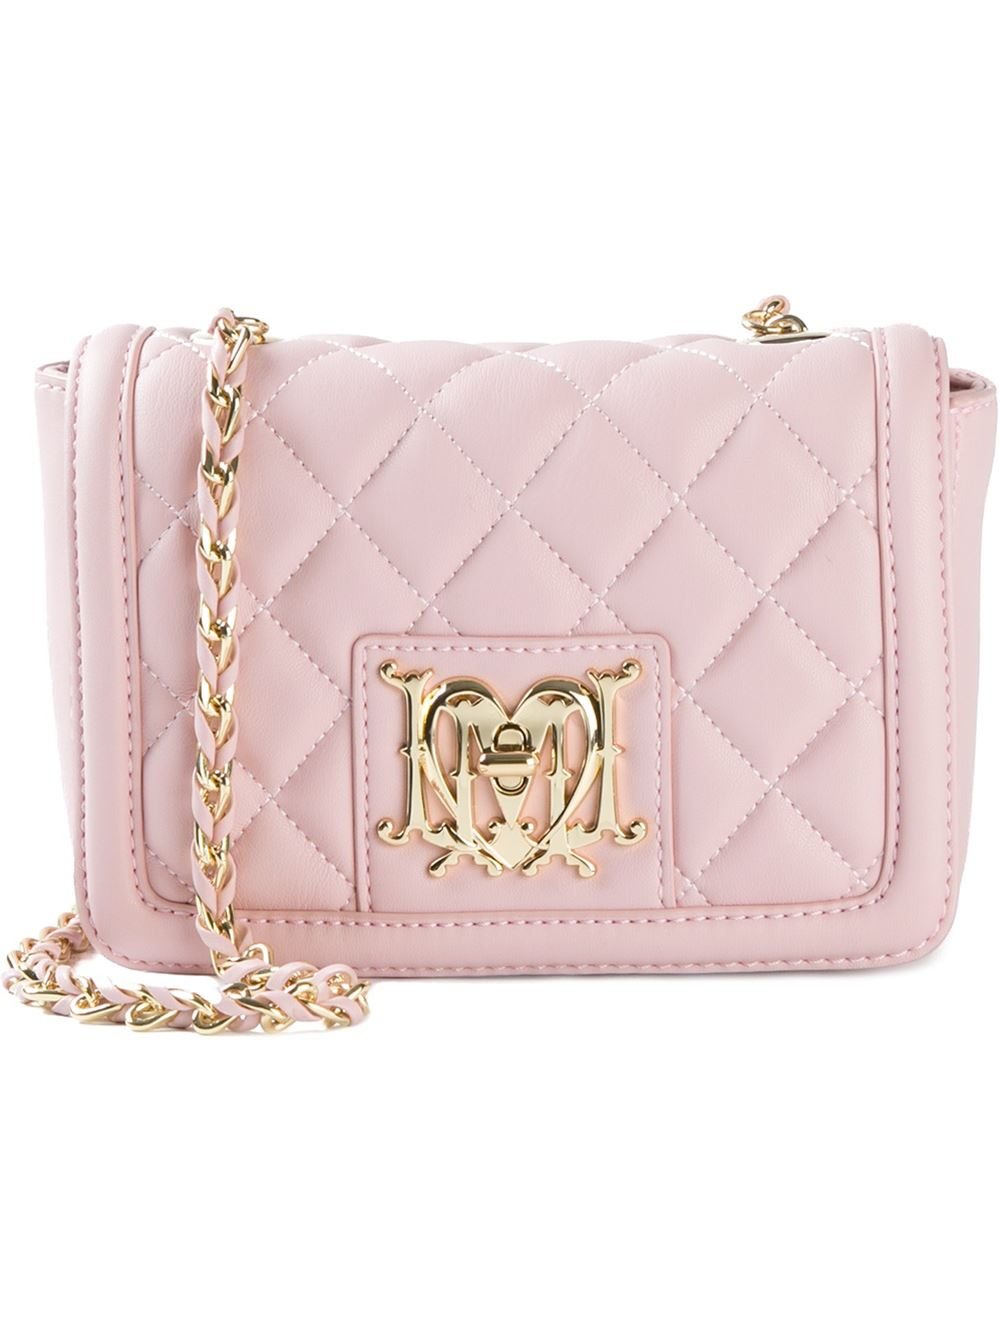 2620df7956d Love Moschino Quilted-Leather Cross-Body Bag in Pink - Lyst